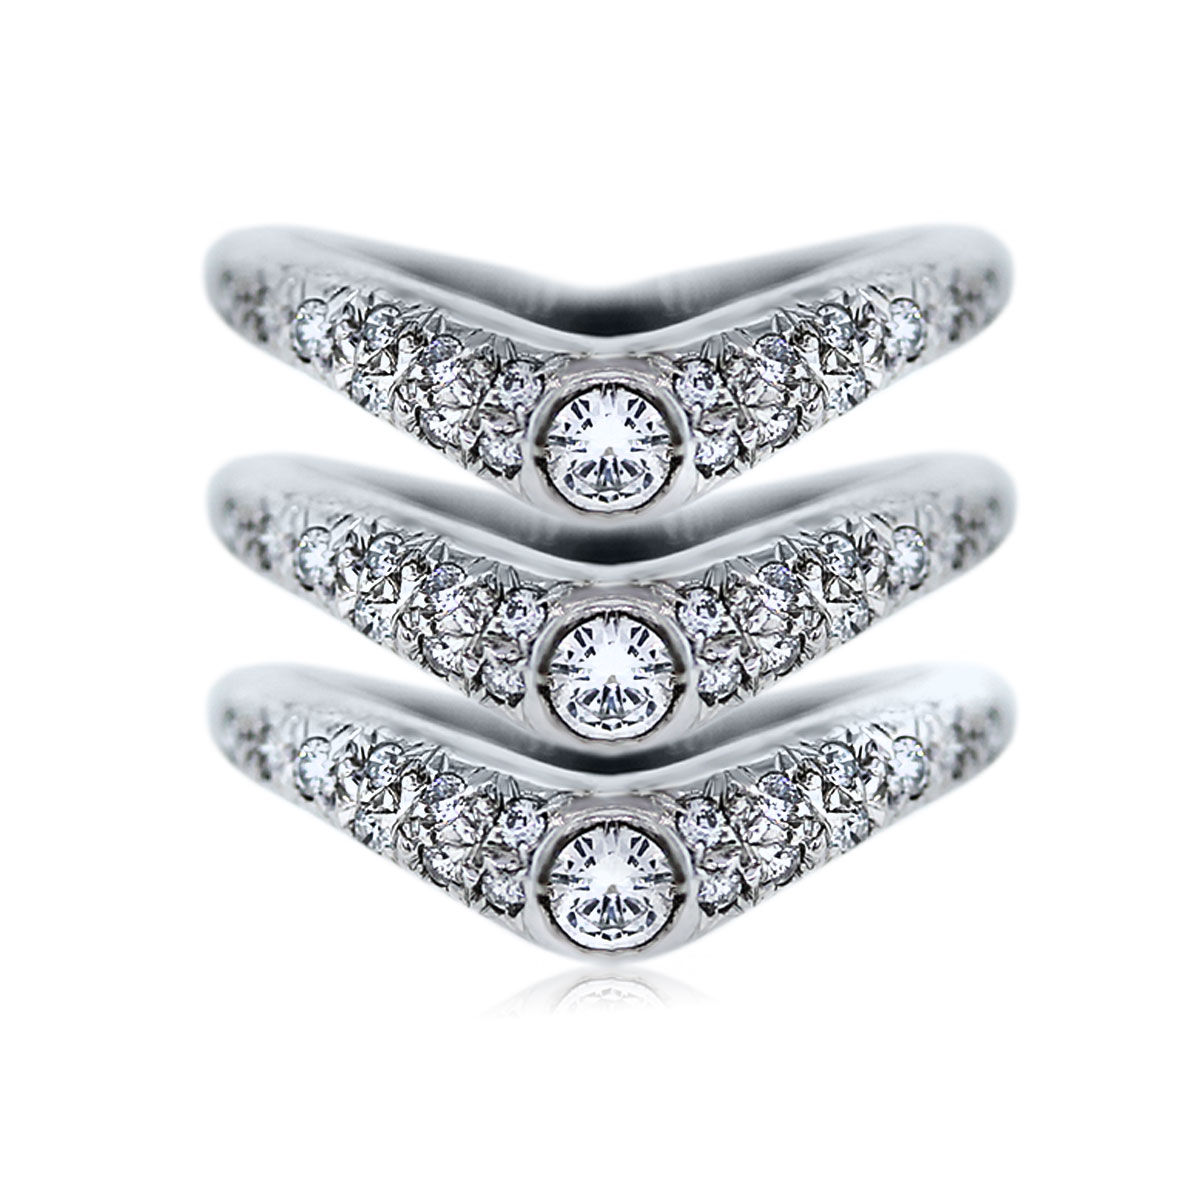 You are Viewing these 18k White Gold Diamond Stackable Rings!